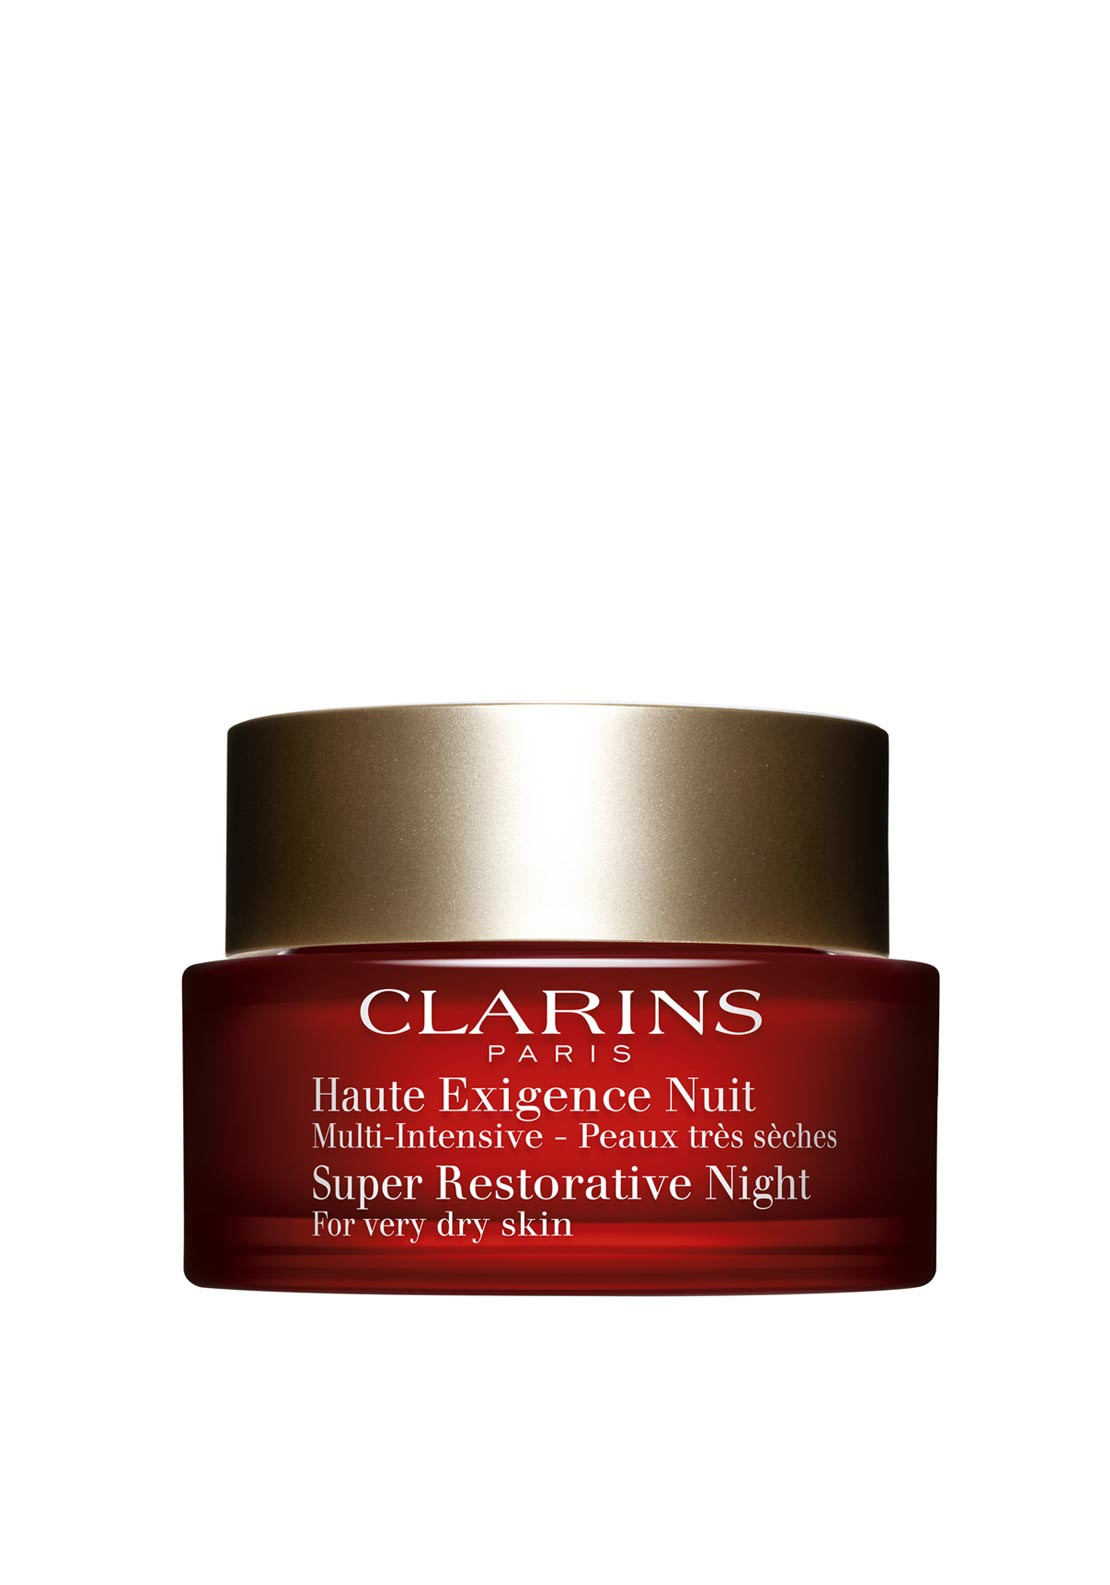 Clarins Super Restorative Night Cream for Very Dry Skin, 50ml